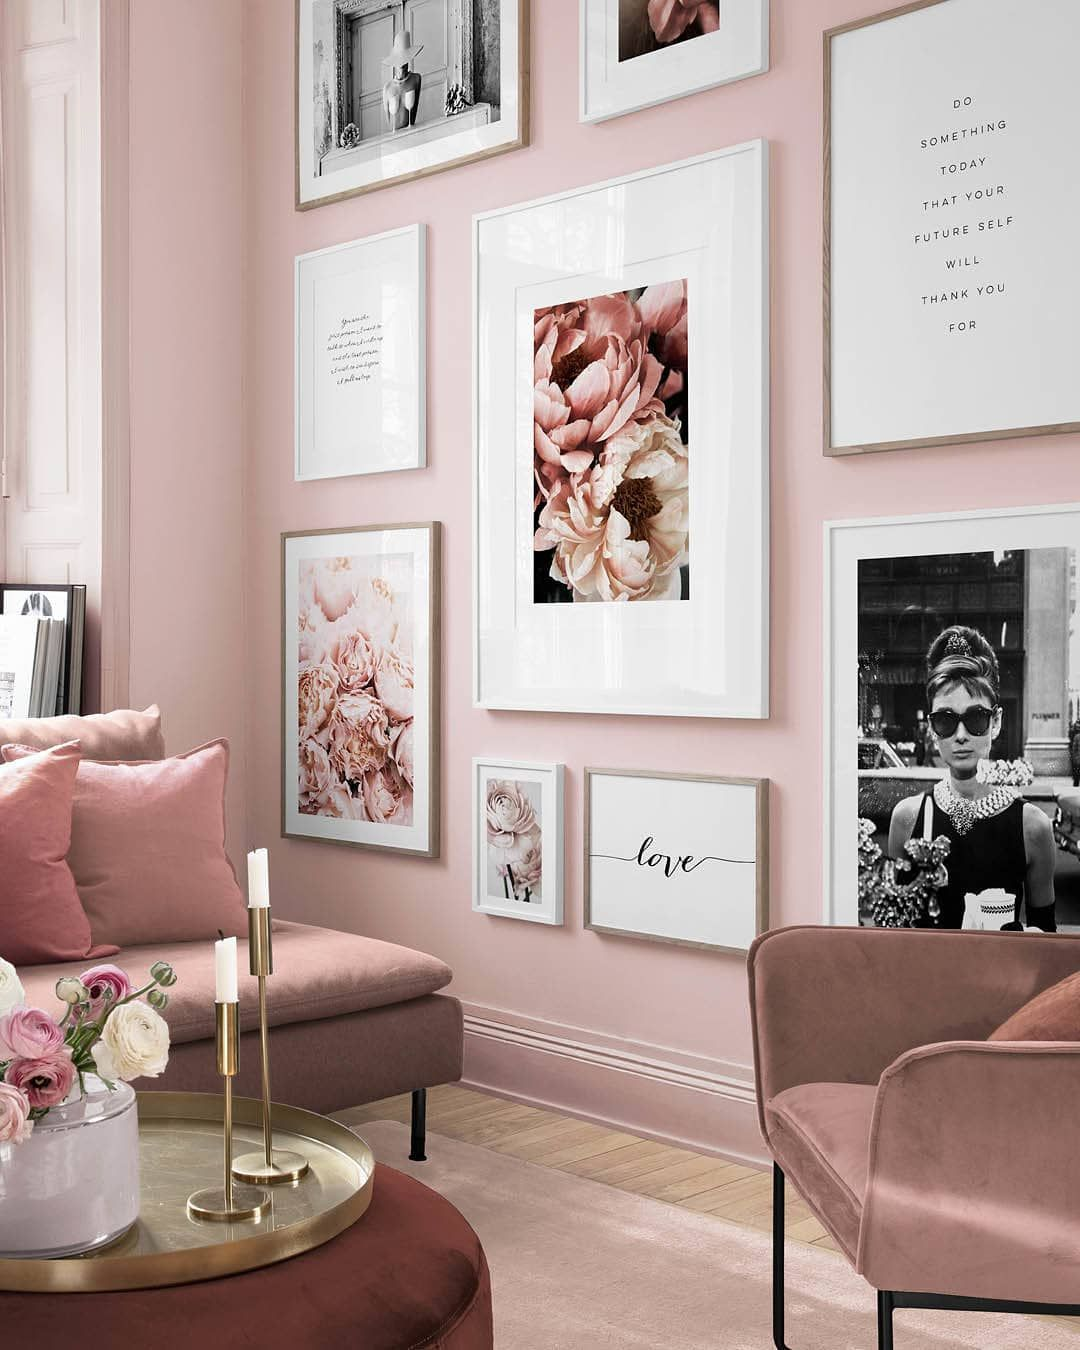 Pink Perfection Designs Cheers 50x70 Cm Soft Peony 30x40 Cm In A 40x50 Cm Frame You Are 30x40 Cm In A 40x Pink Living Room Home Decor Home